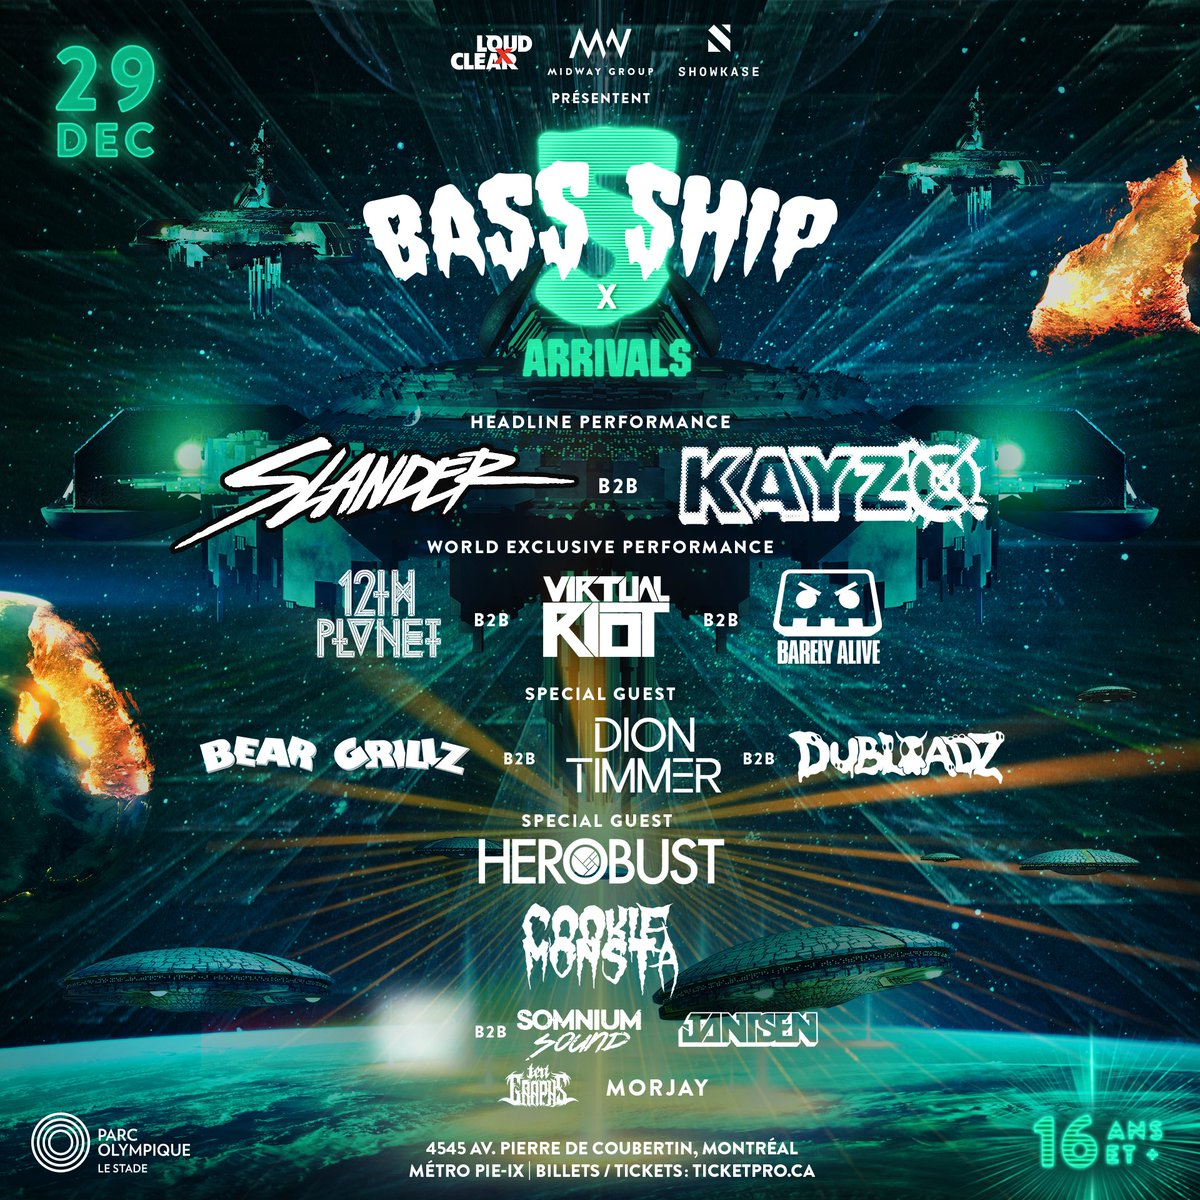 Kayzo and Slander debut at Bass Ship 5 alongside other B2Bs